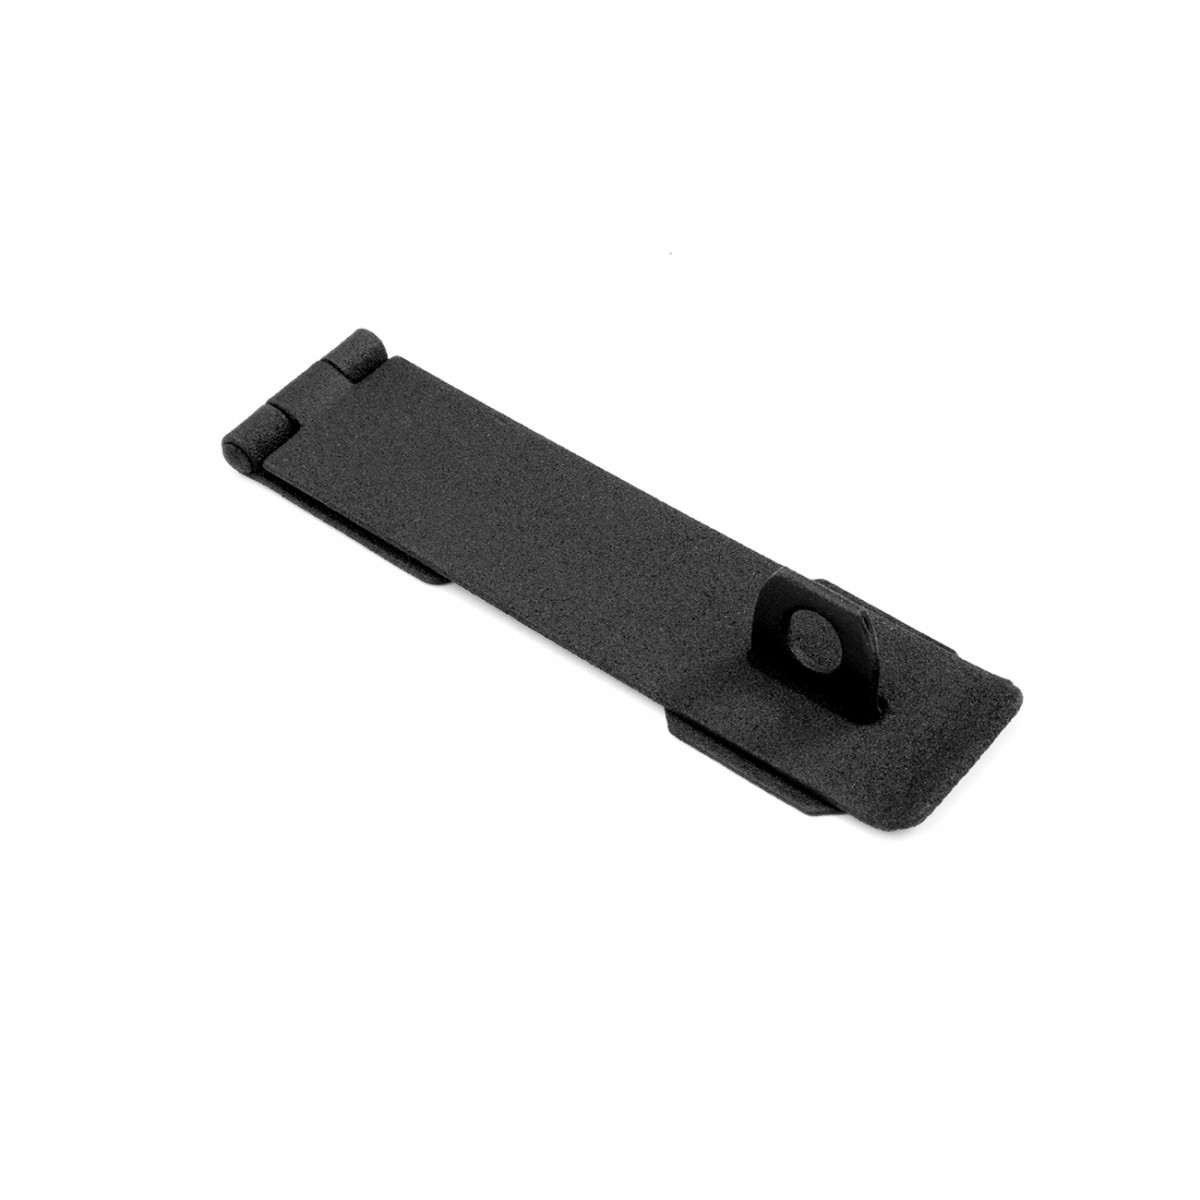 Hasp black cast iron 1 5 8 h x 8 1 4 w for Front door handle 7 5 inches